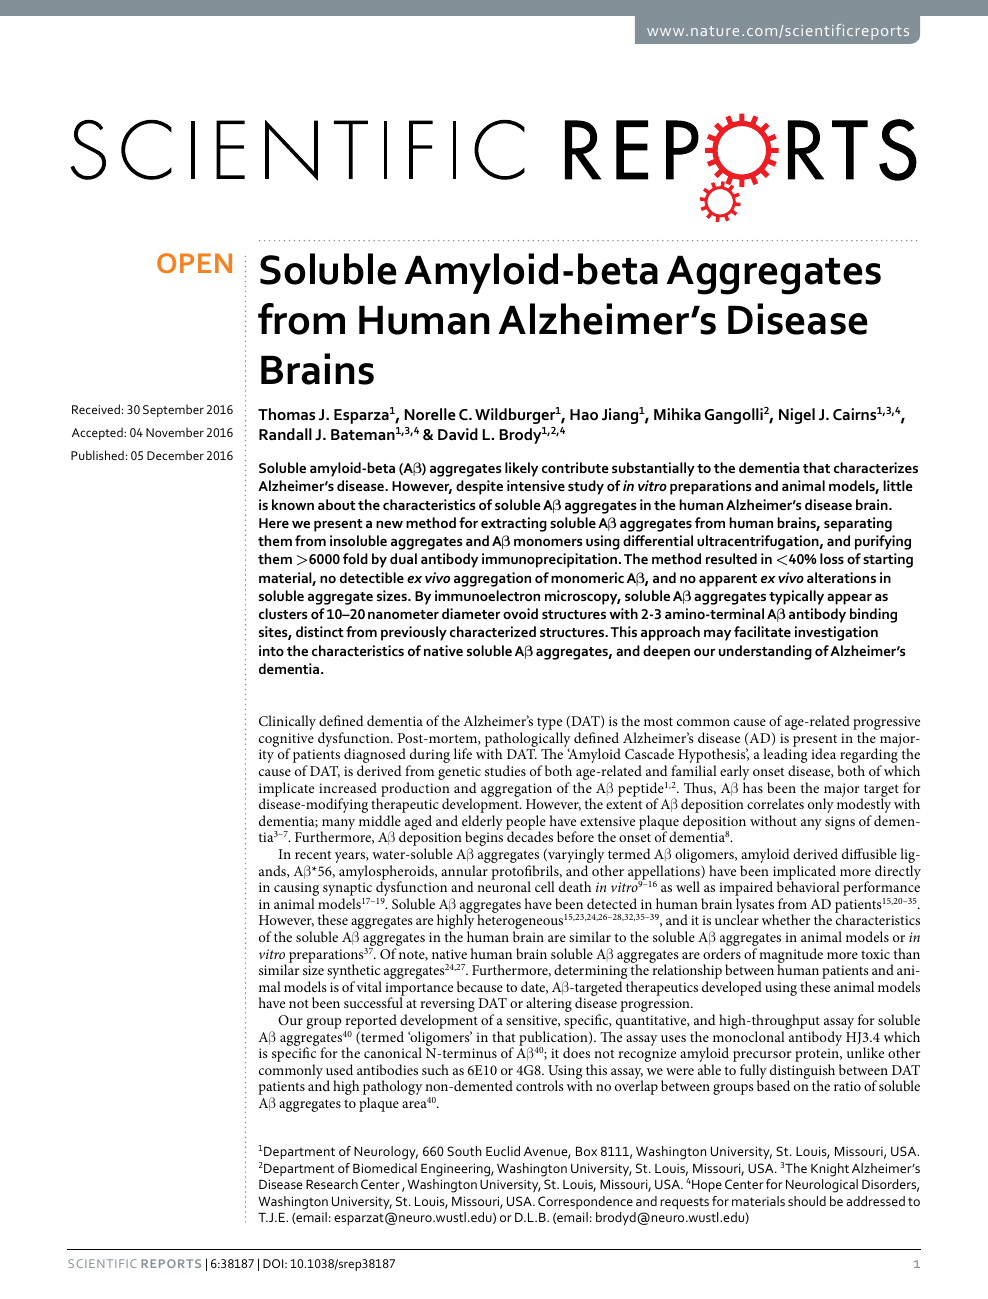 Soluble Amyloid-beta Aggregates from Human Alzheimer's